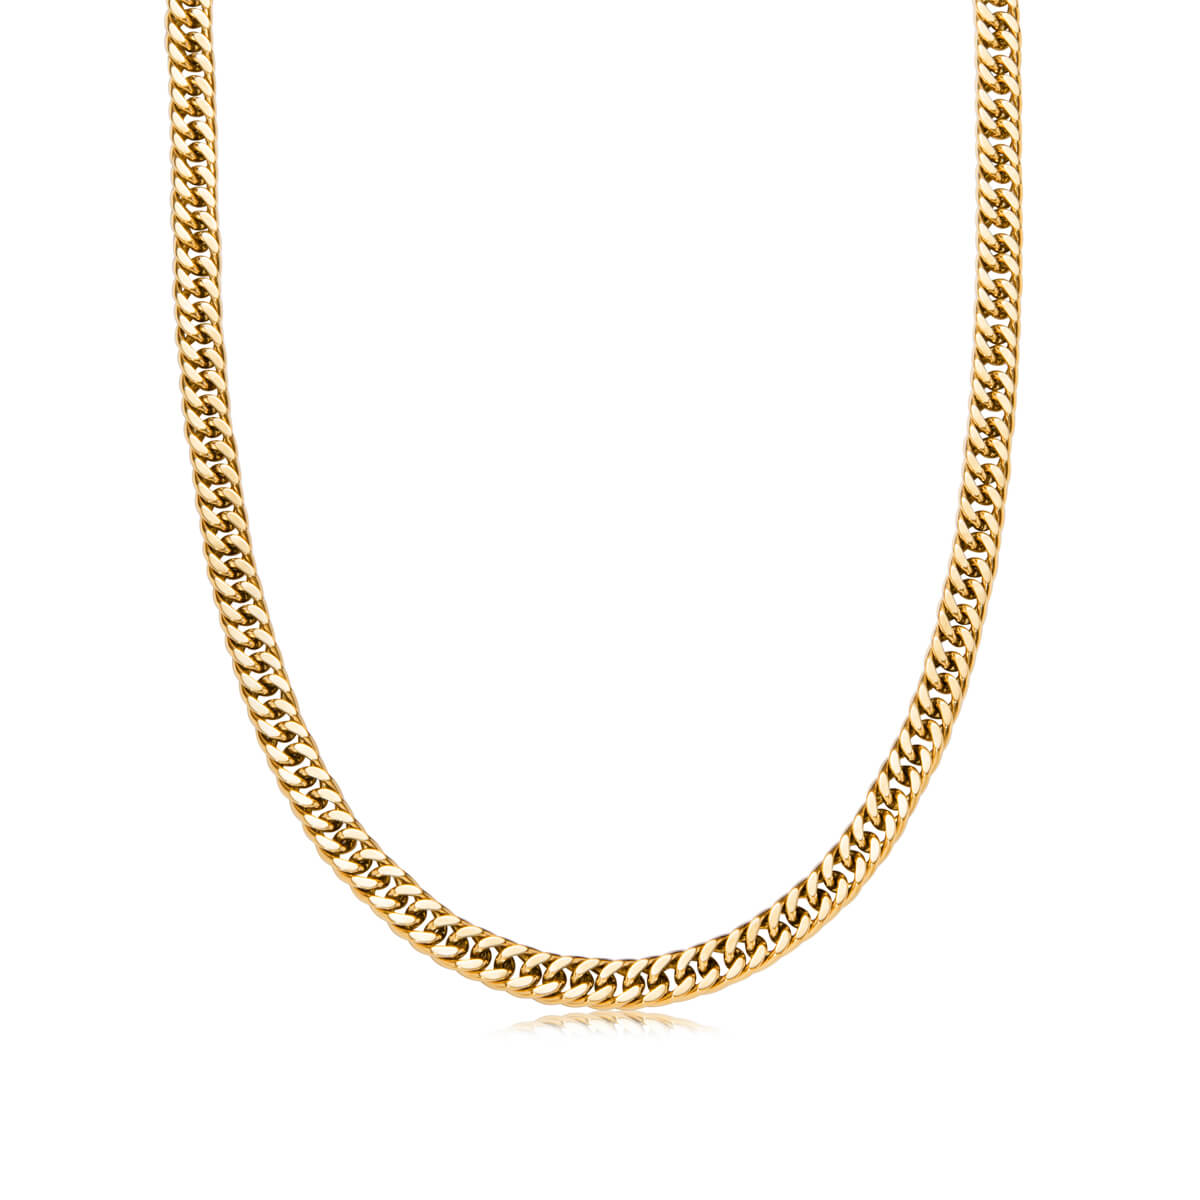 Selected Curb Chain Necklace 18 in (Gold)